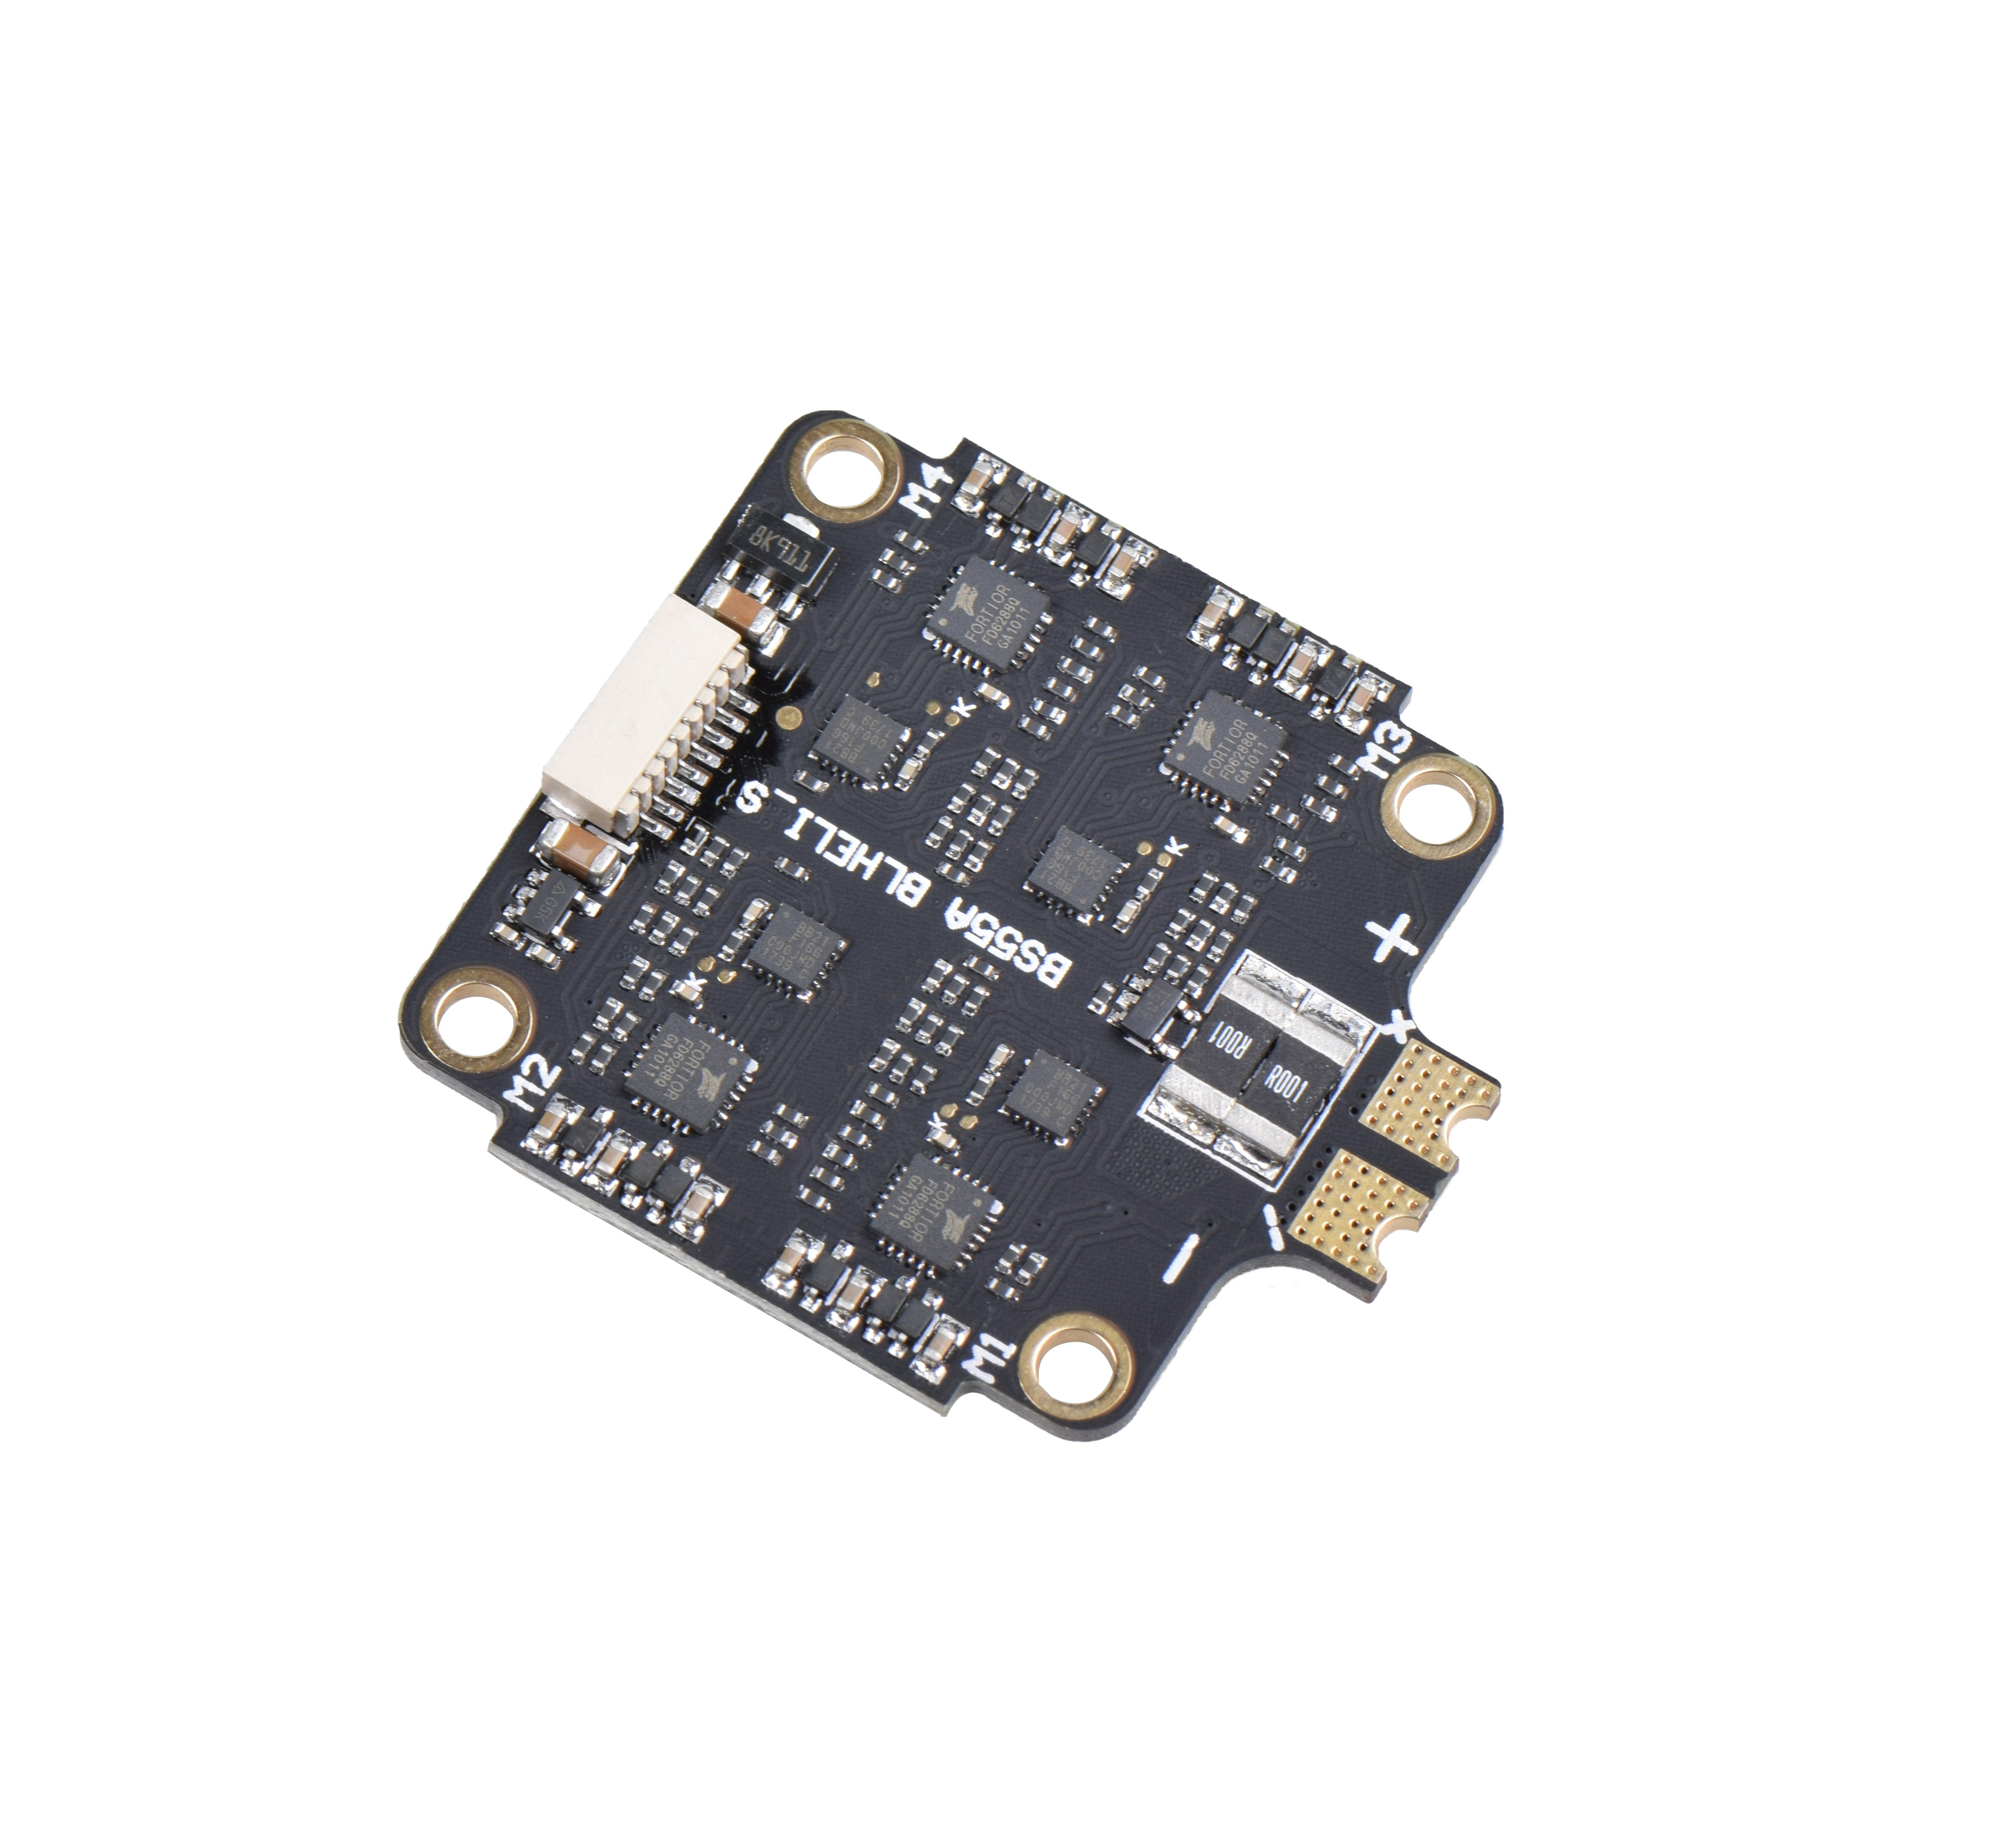 BS-55A 2-6s 4 In 1 55A / 40A ESC BLHeli_S ESC Speed controller board Support Dshot150 Dshot300 Dshot600 for RC Drone FPV Racing Models BS-40A